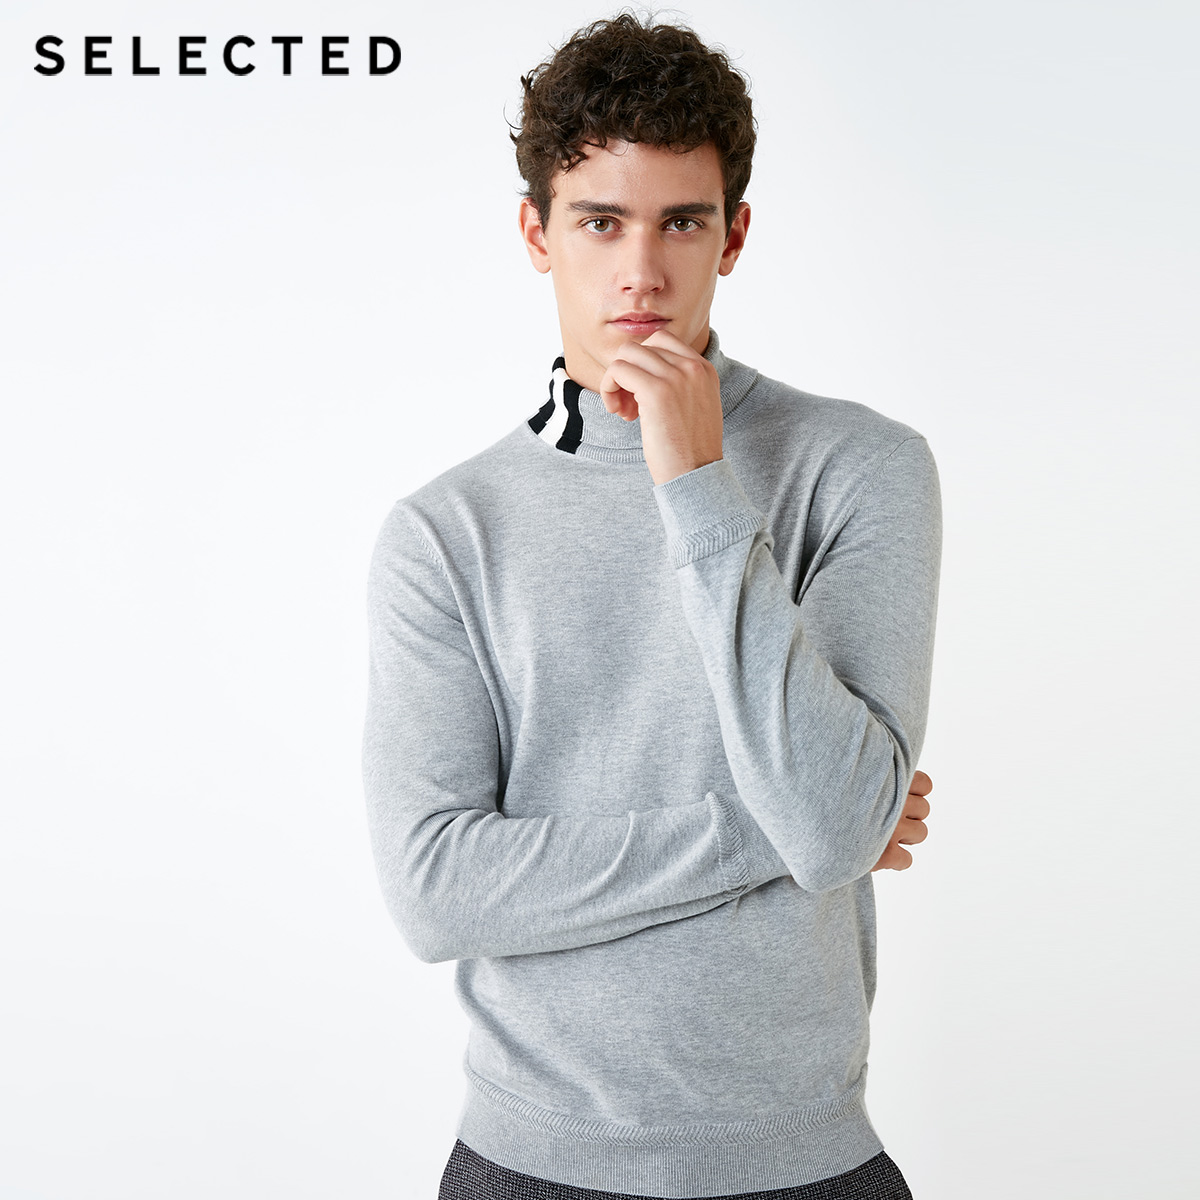 SELECTED Men's 100% Cotton Striped High-necked Knit S 418424523